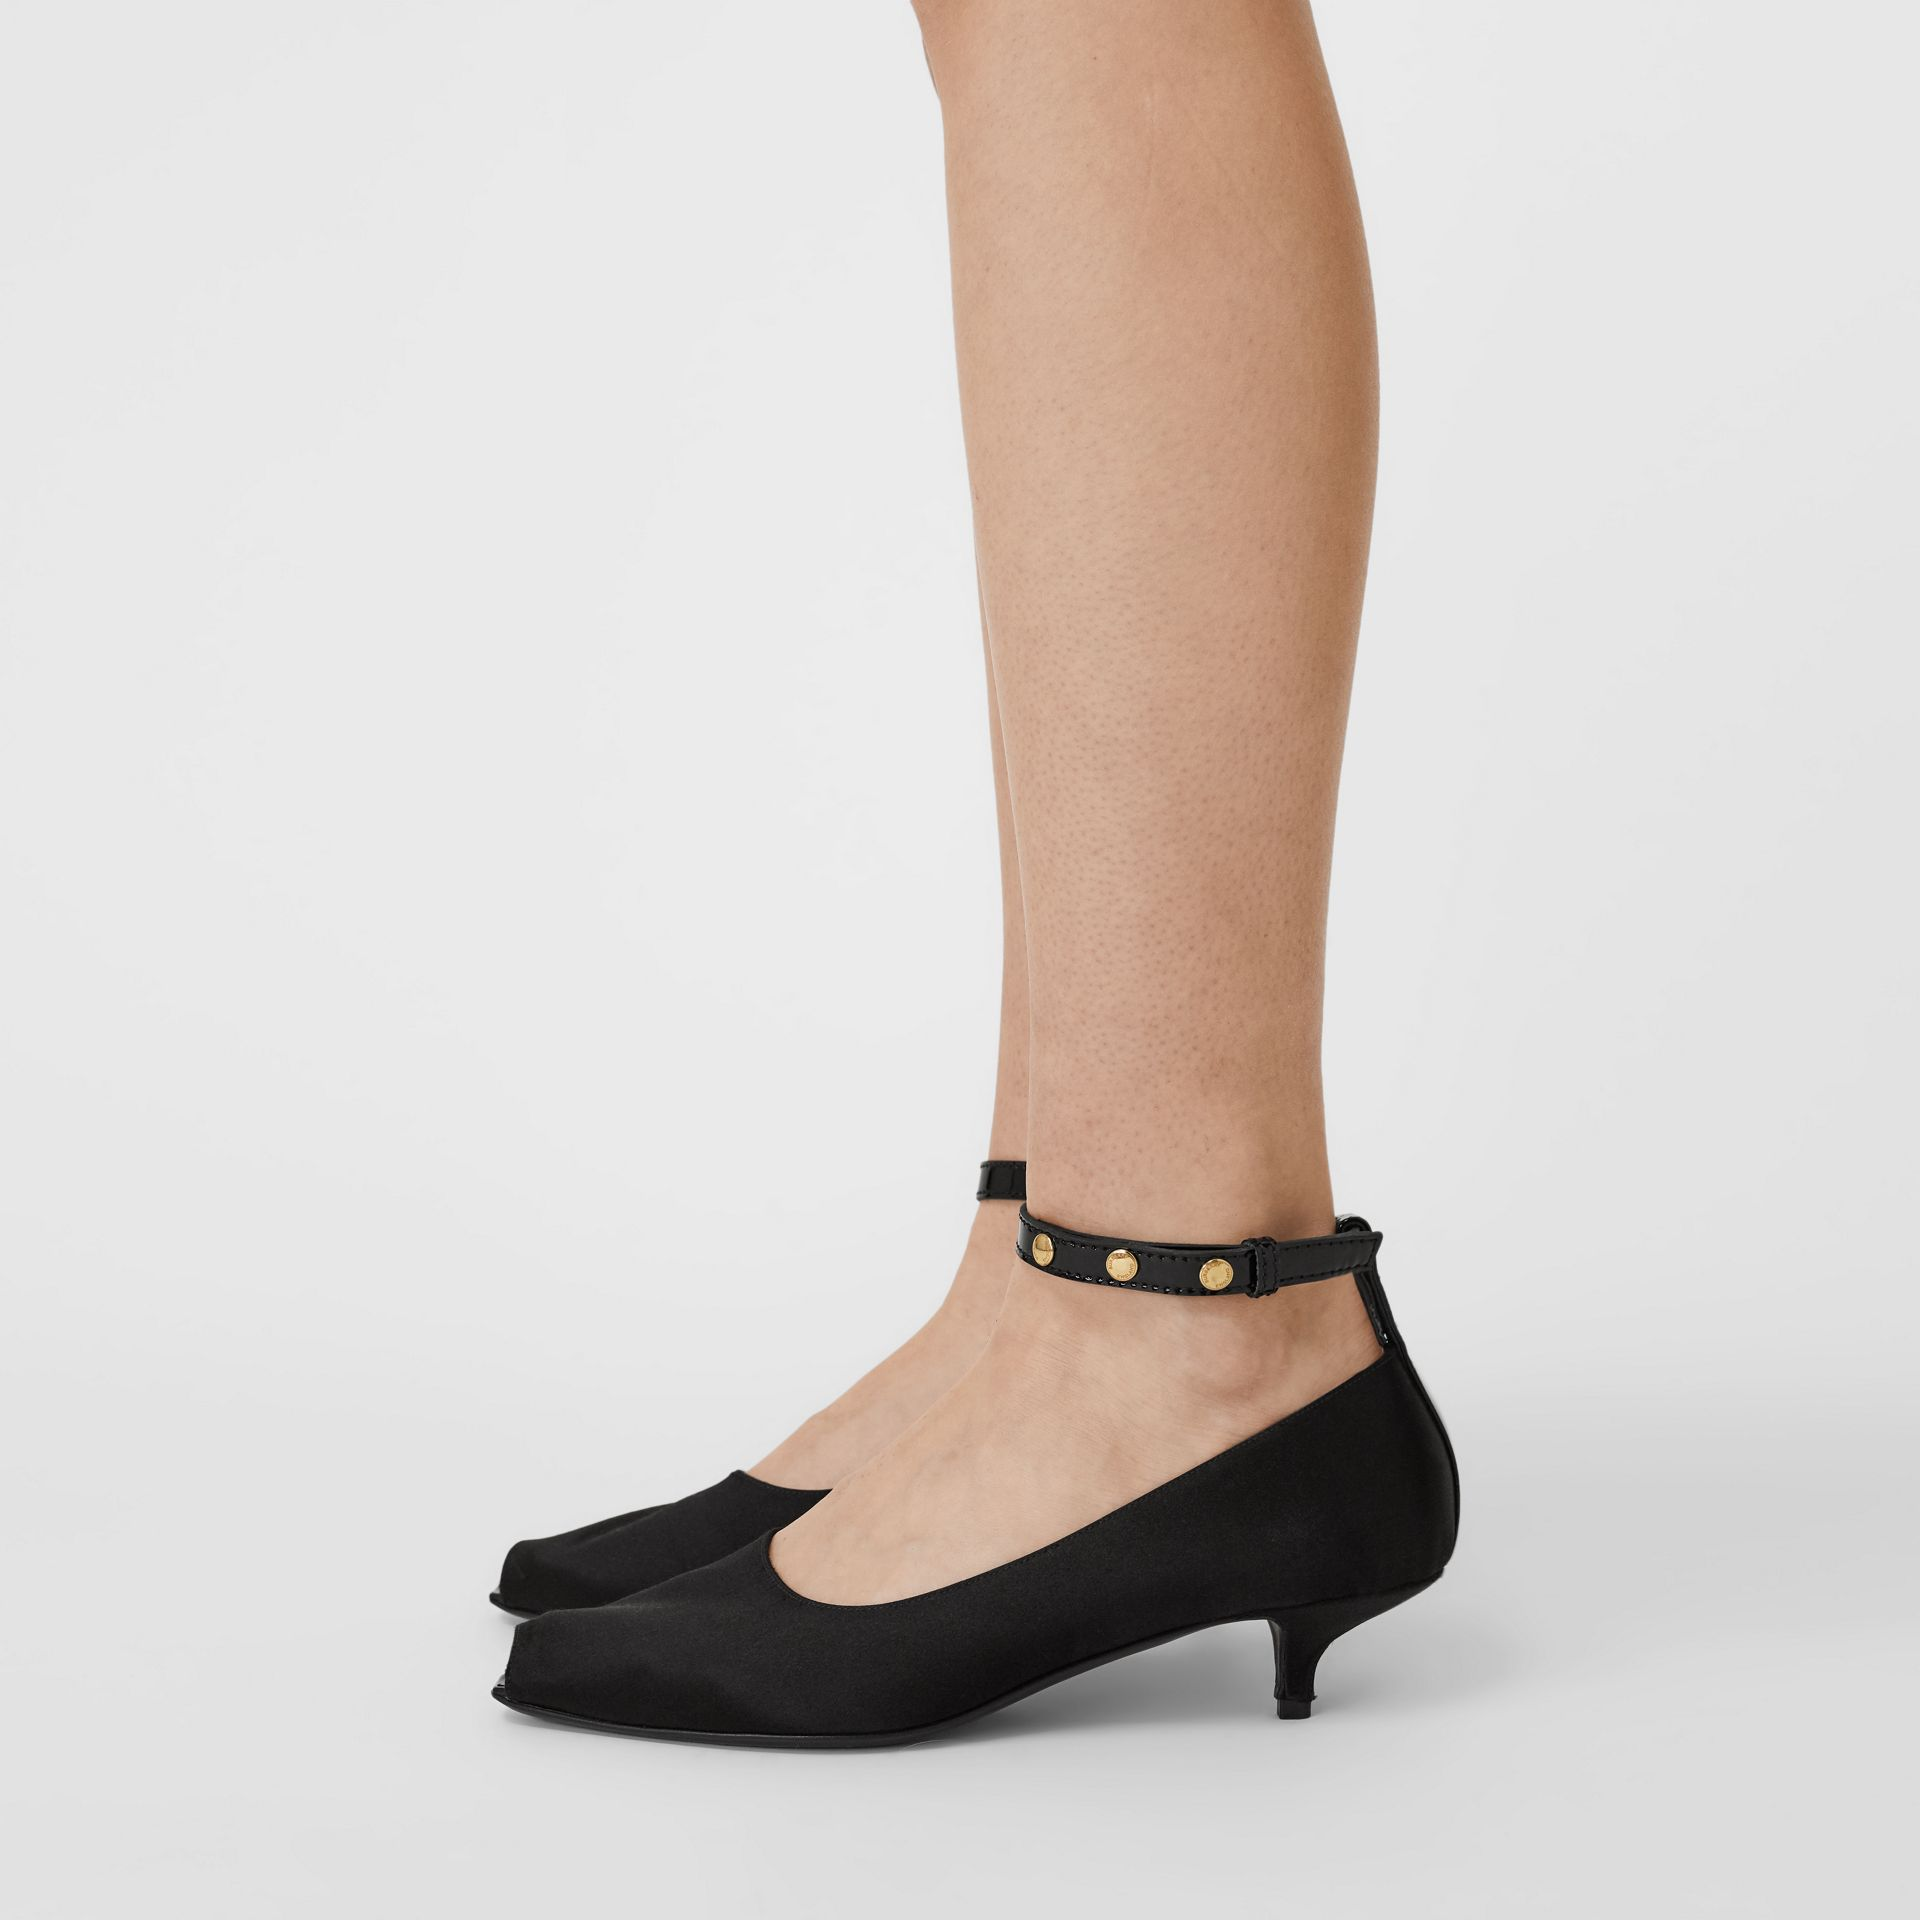 Satin Peep-toe Kitten-heel Pumps in Black - Women | Burberry - gallery image 2